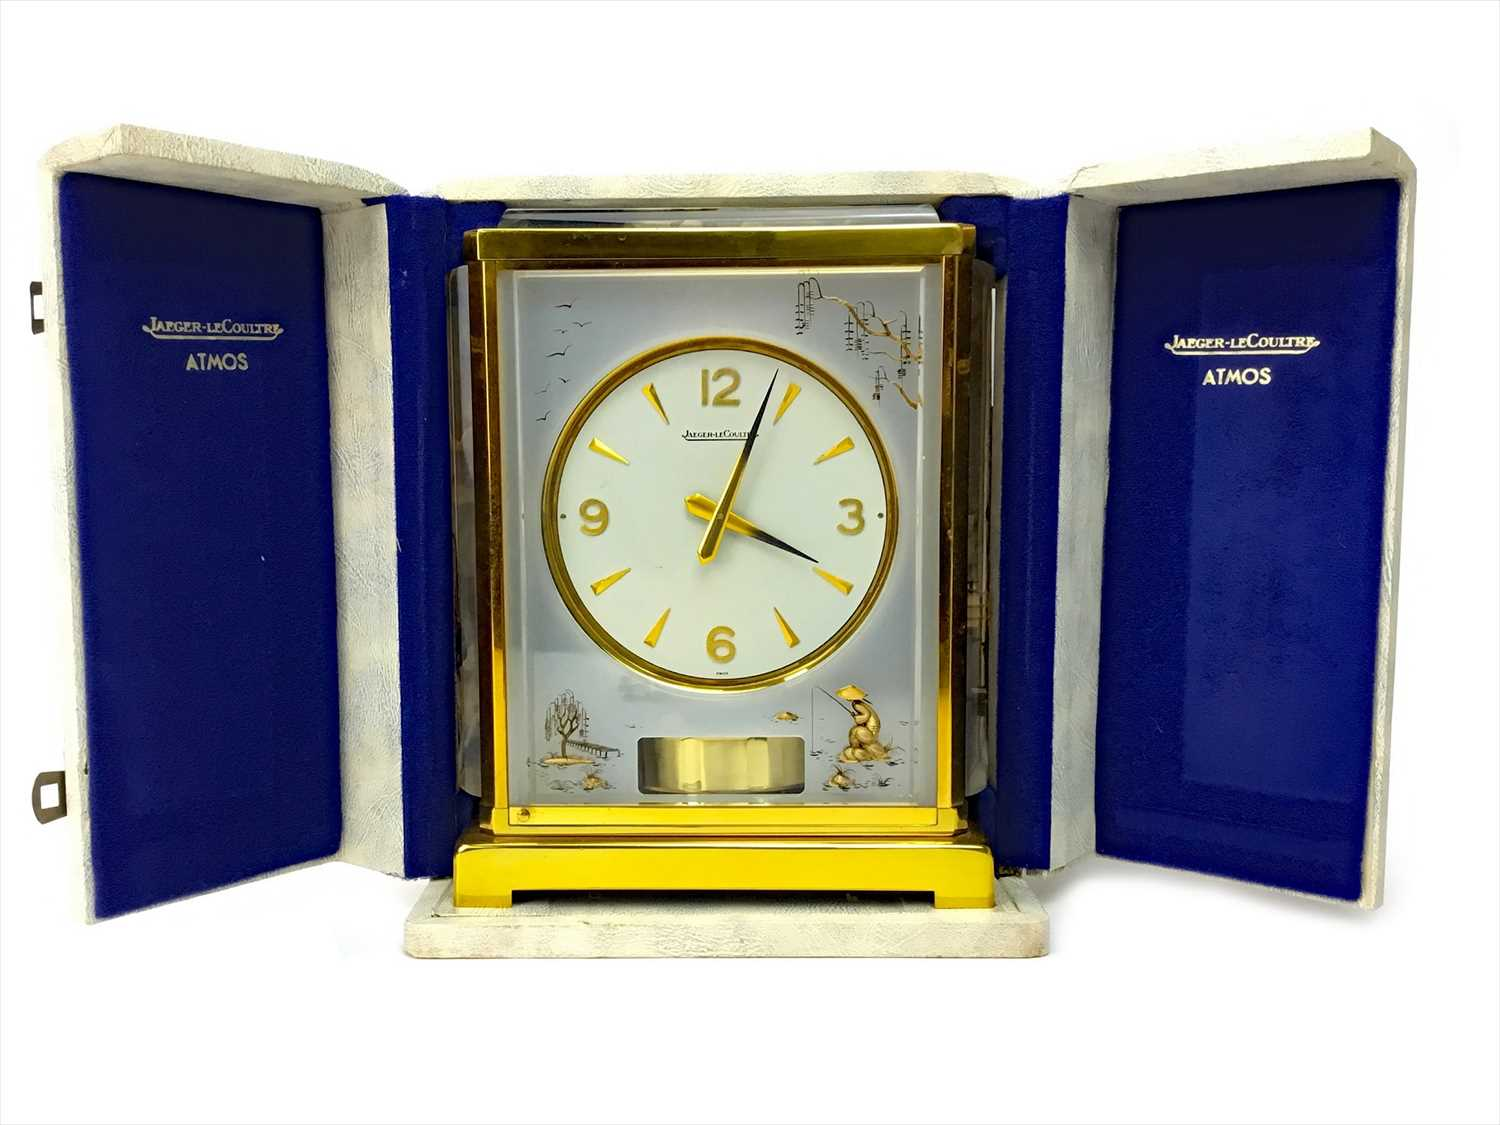 Lot 1179-A JAEGER LE COULTRE ATMOS CLOCK